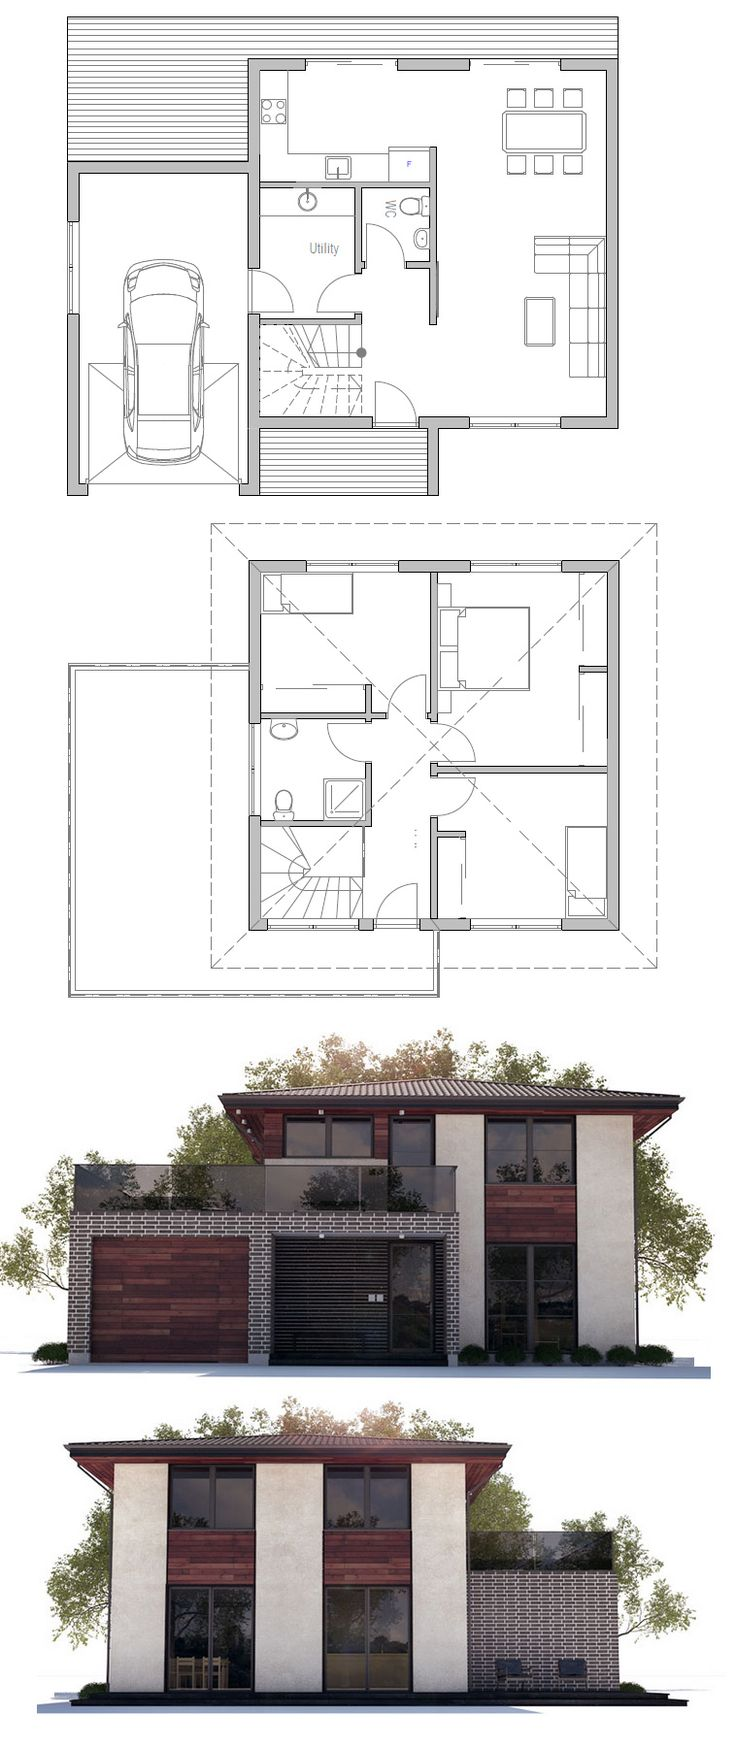 1000+ ideas about Drawing House Plans on Pinterest Big Windows ... - ^